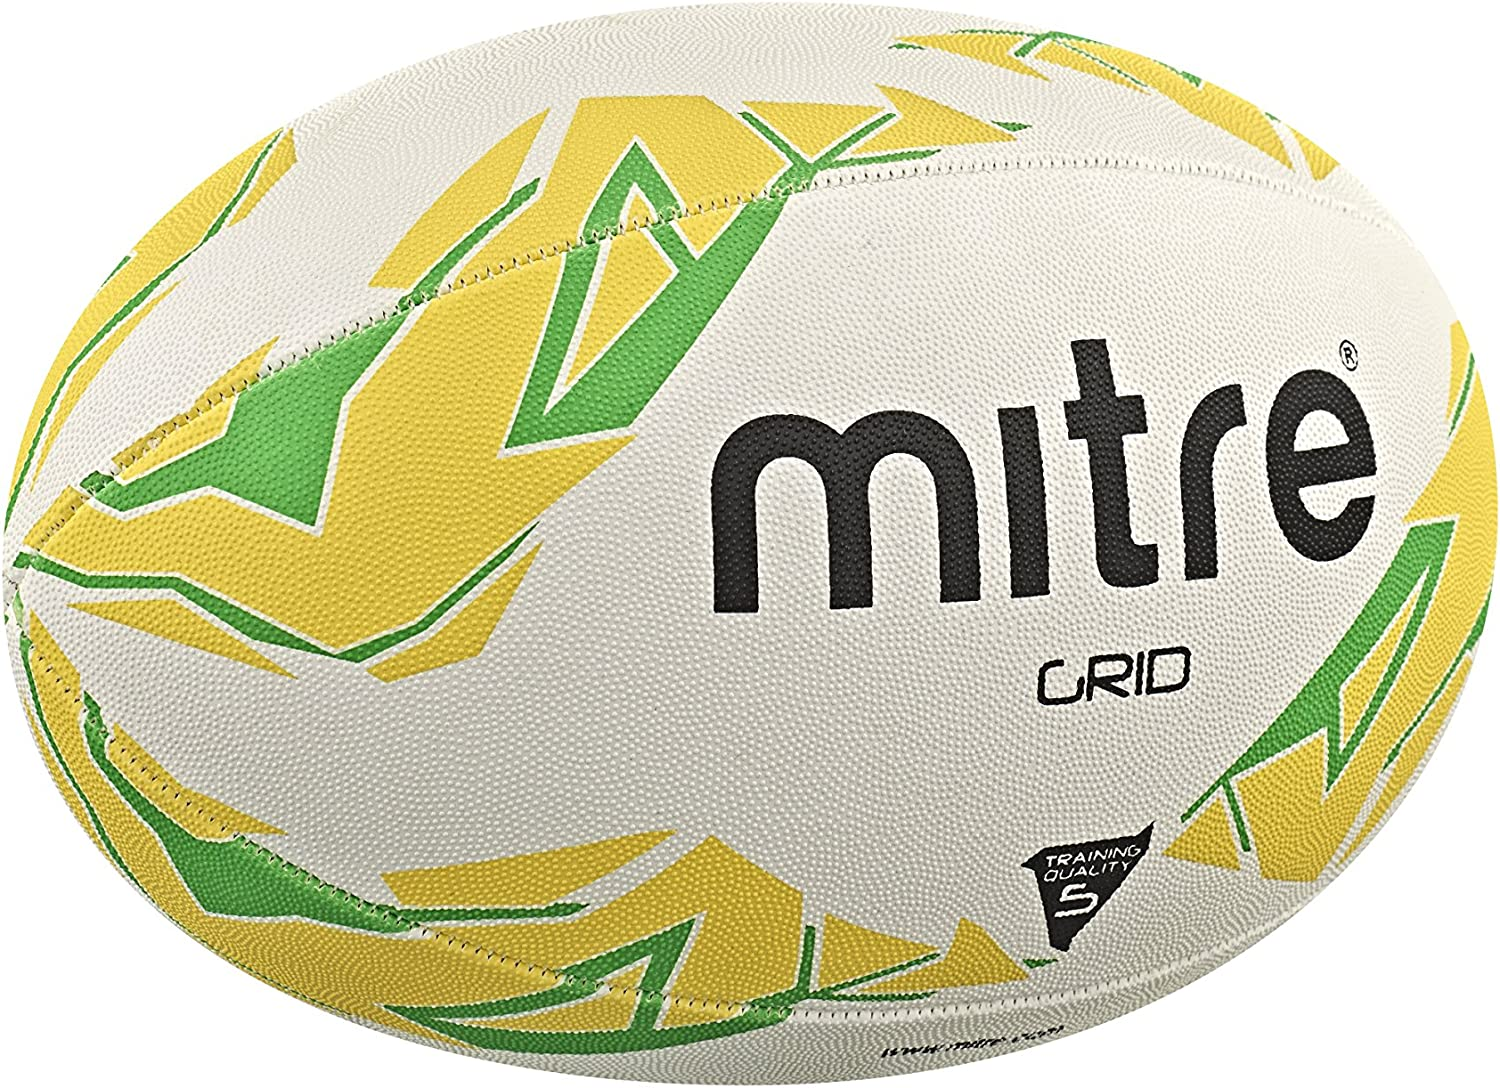 Mitre Mens Grid Training Rugby Ball - White/Yellow/Green, Size 3 ...